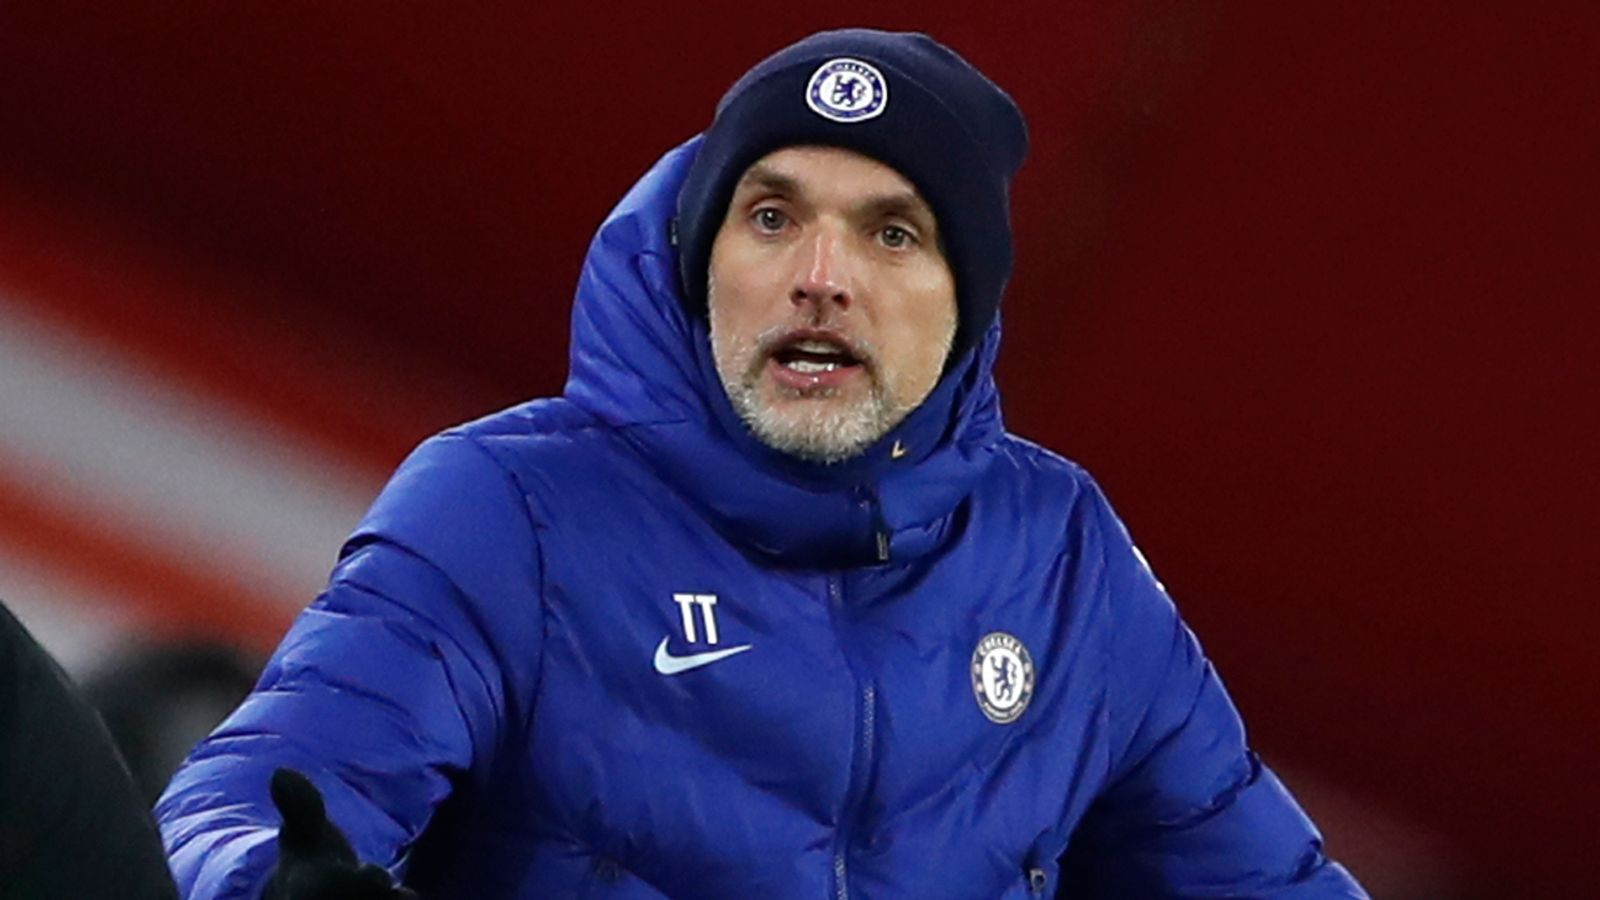 Thomas Tuchel sets out Chelsea approach and admits PSG exit has complicated family life | Football News | Sky Sports